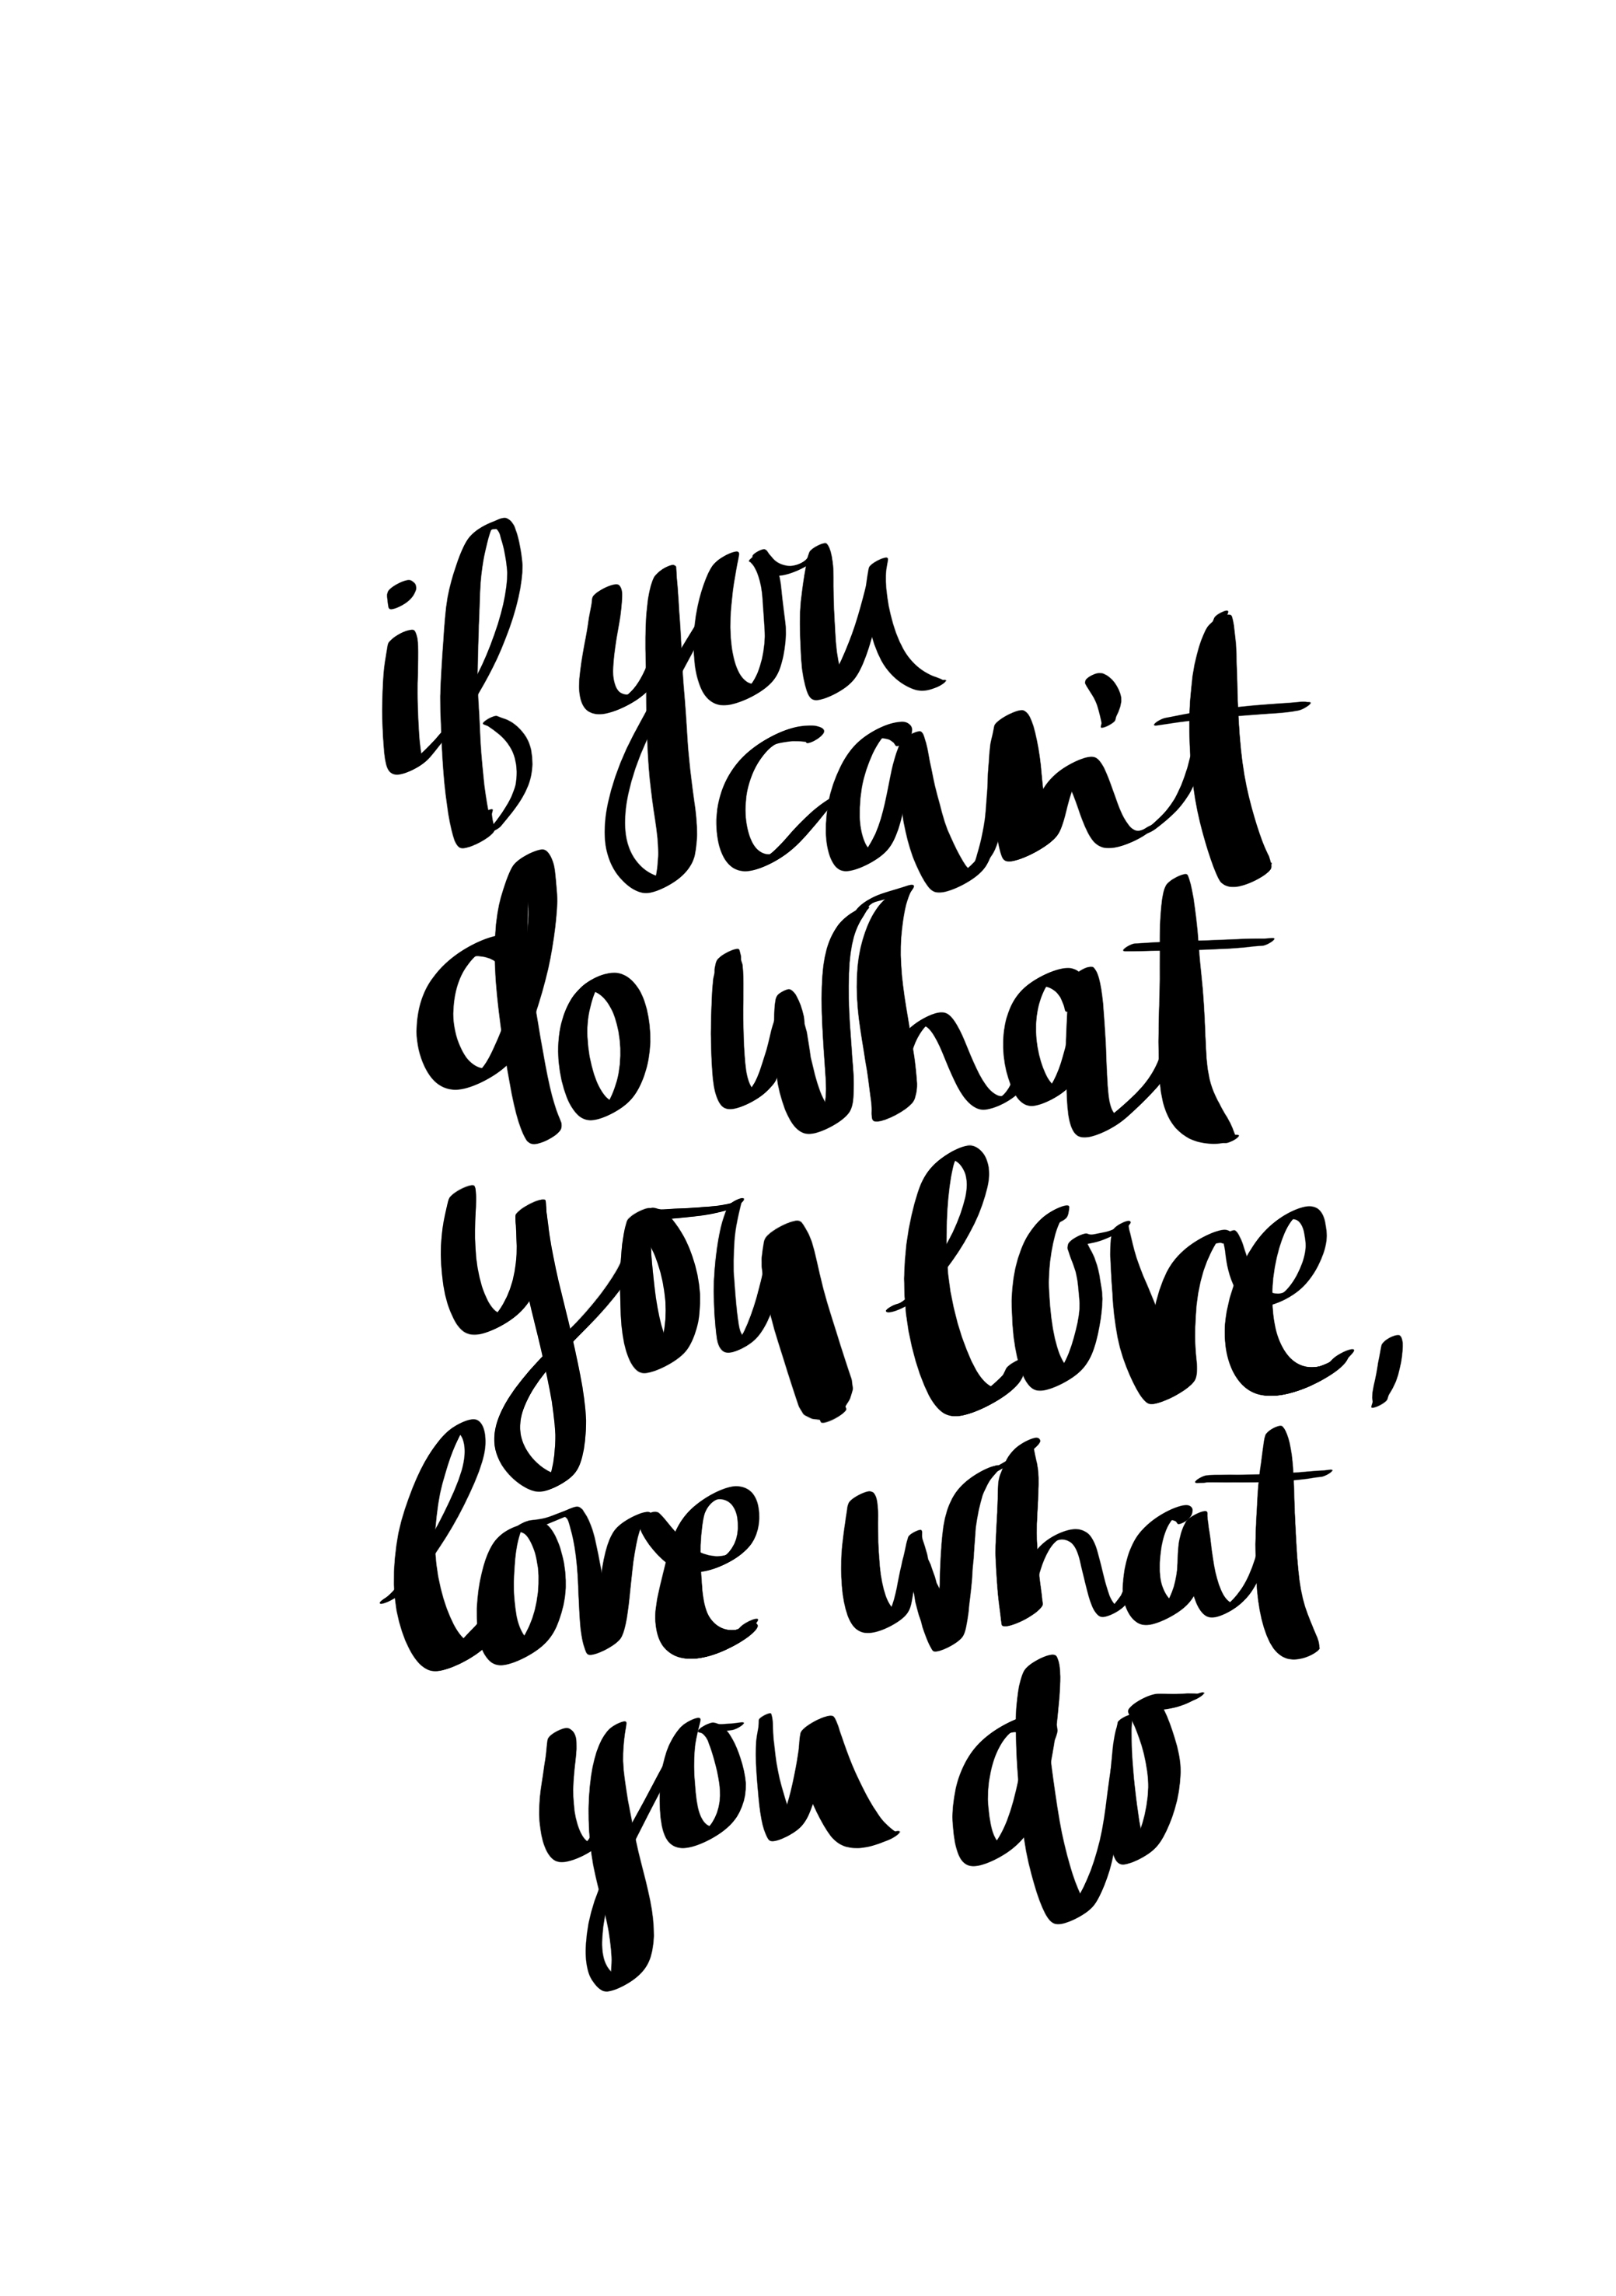 Do What U Love Quotes : if_you_can_t_do_what_love__love_what_you_do_by_cocorie-d7i2tam.jpg